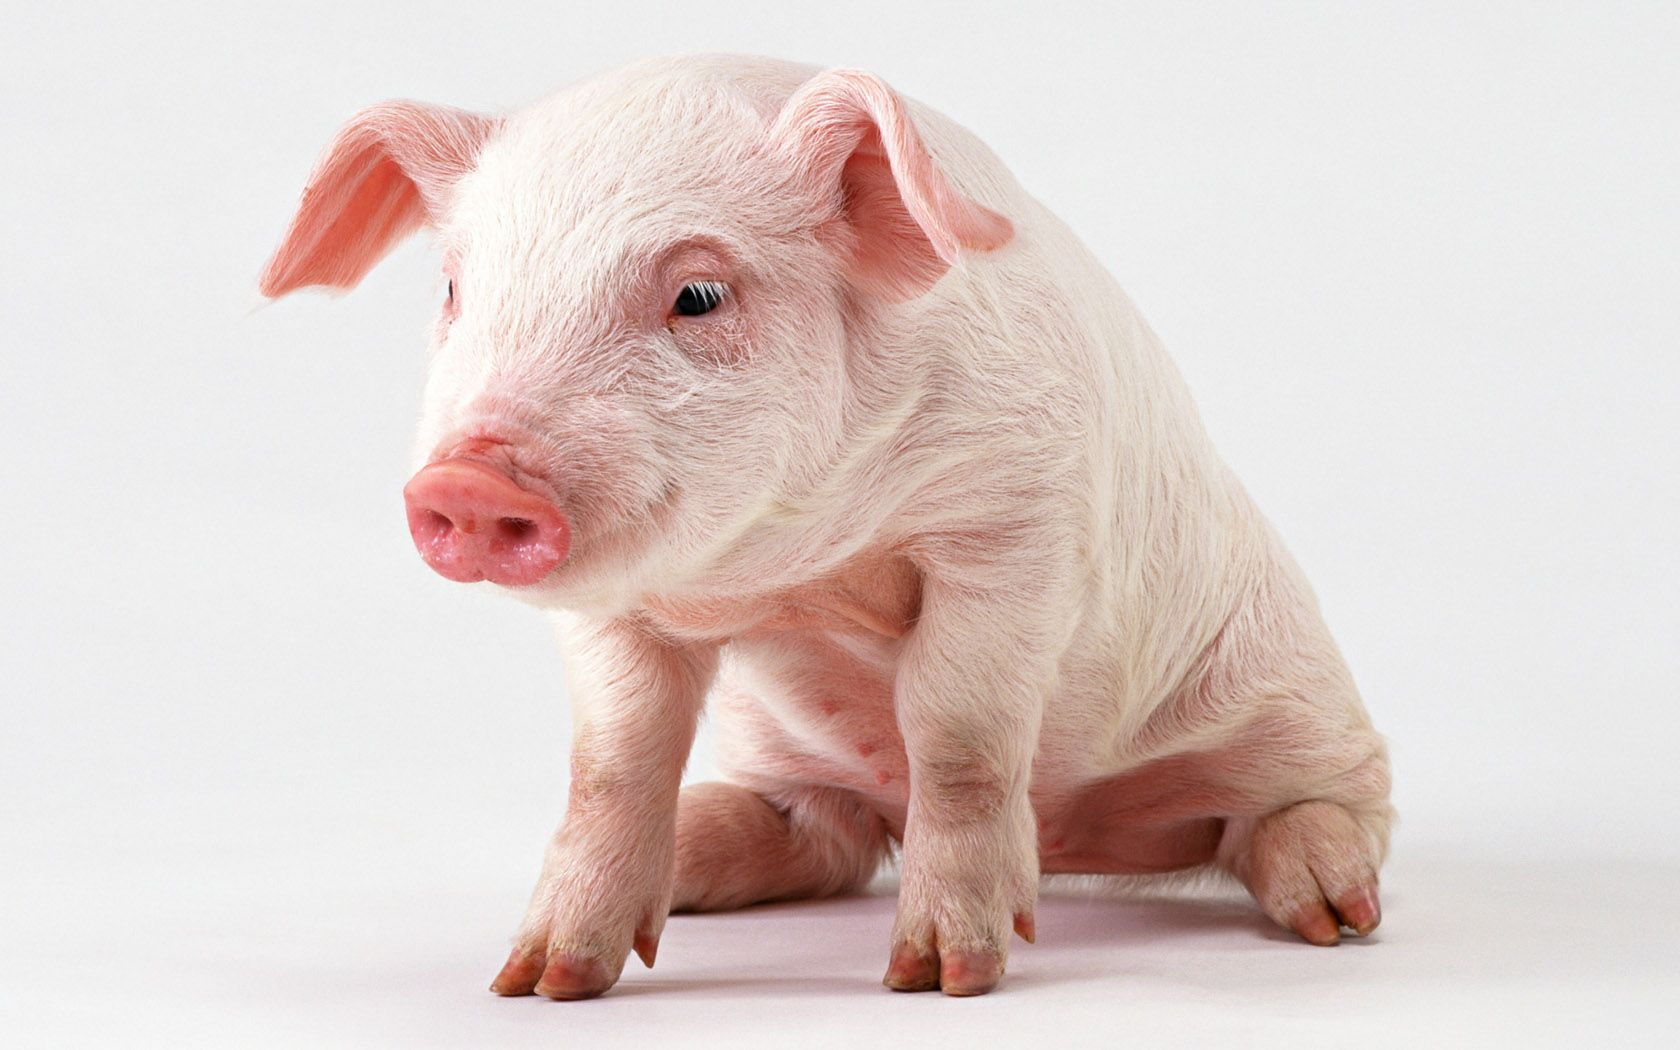 Pink pig wallpapers and images   wallpapers pictures photos 1680x1050